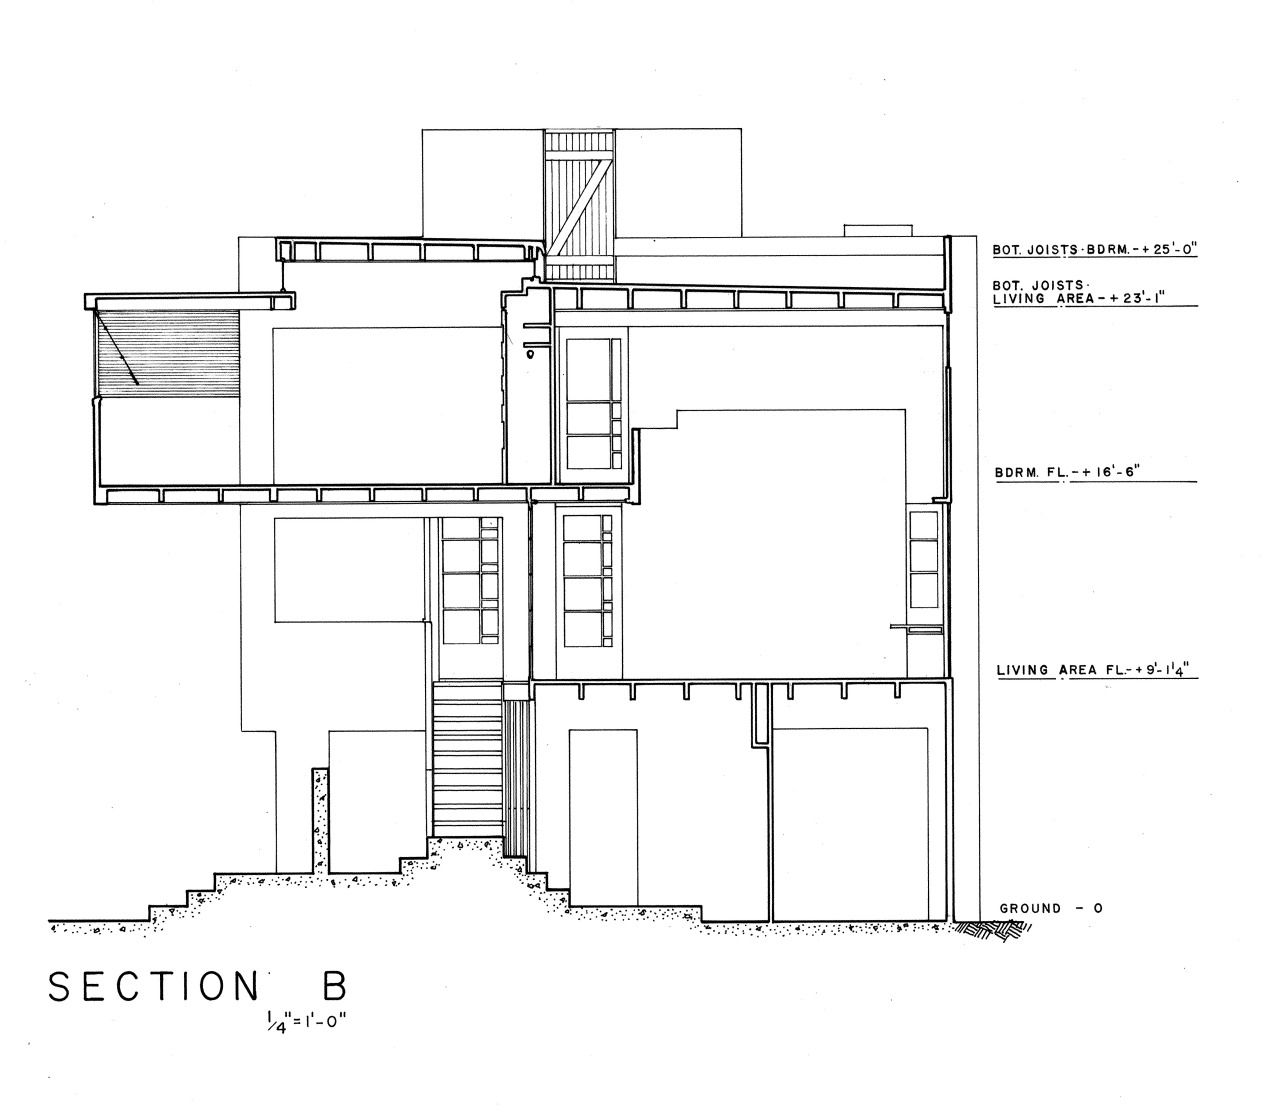 Architectural Drawings Models Photos Etc